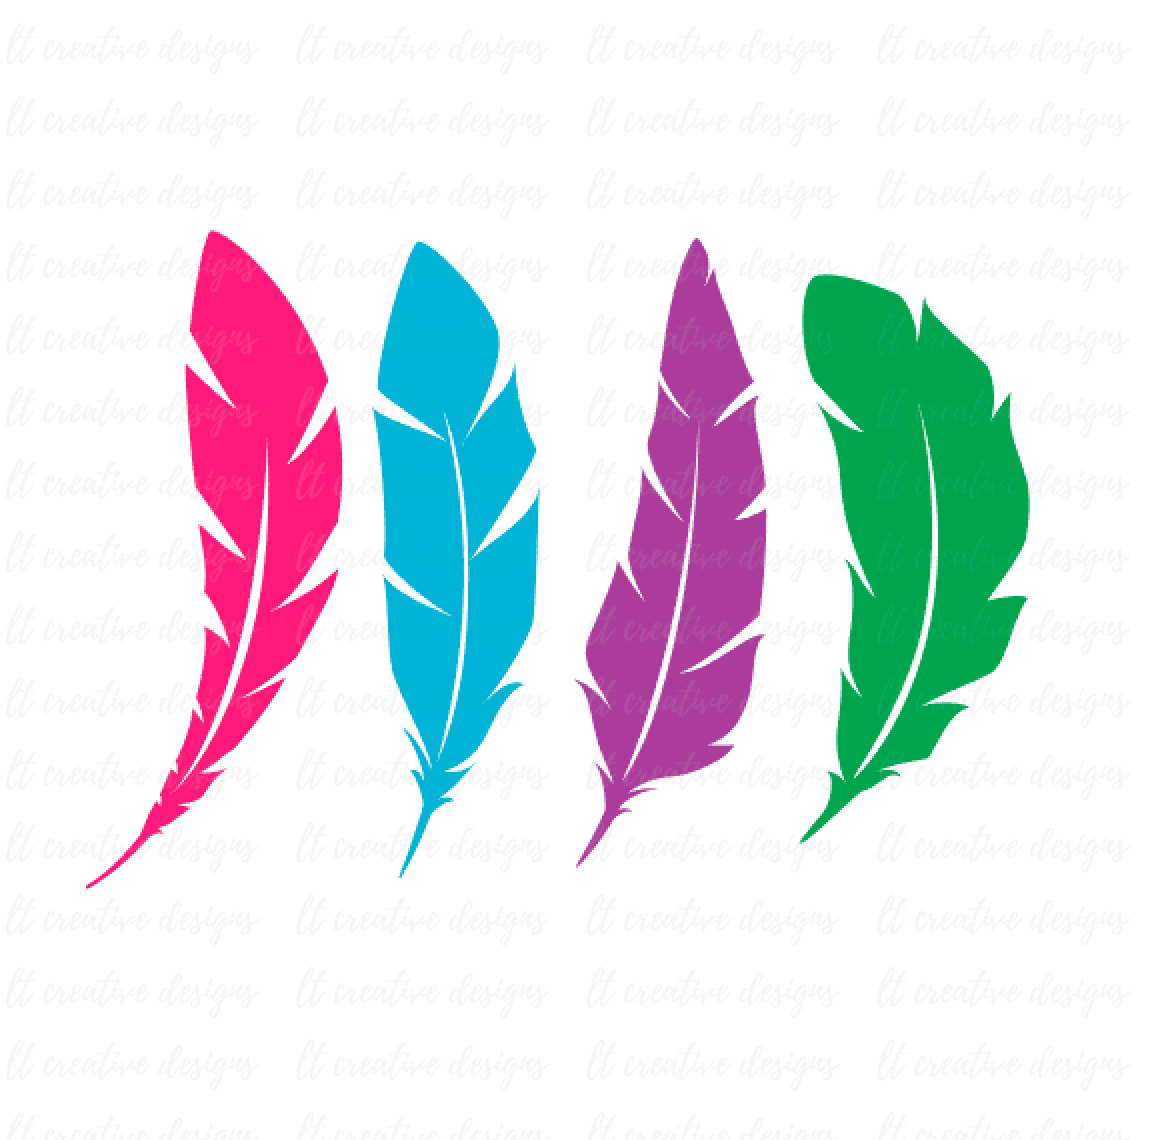 Feather Clip Art, Feather SVG, Feathers SVG, Feather PNG, Feather Set Svg, Cricut Cut Files, Silhouette Svg